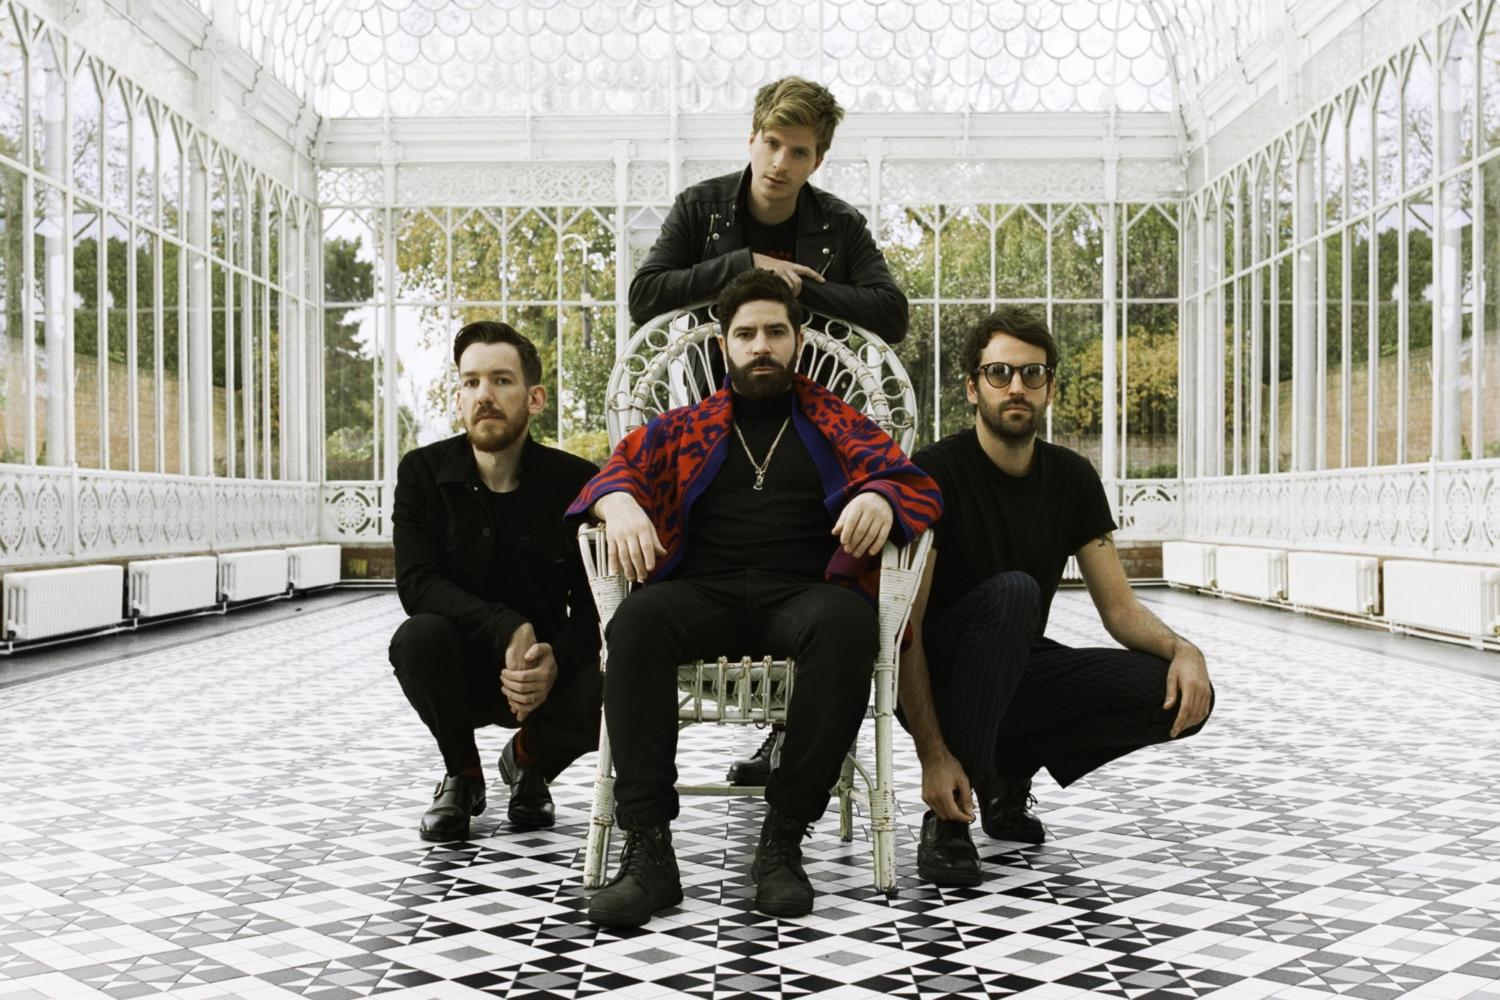 Tracks: Foals, BROCKHAMPTON, Haim and more